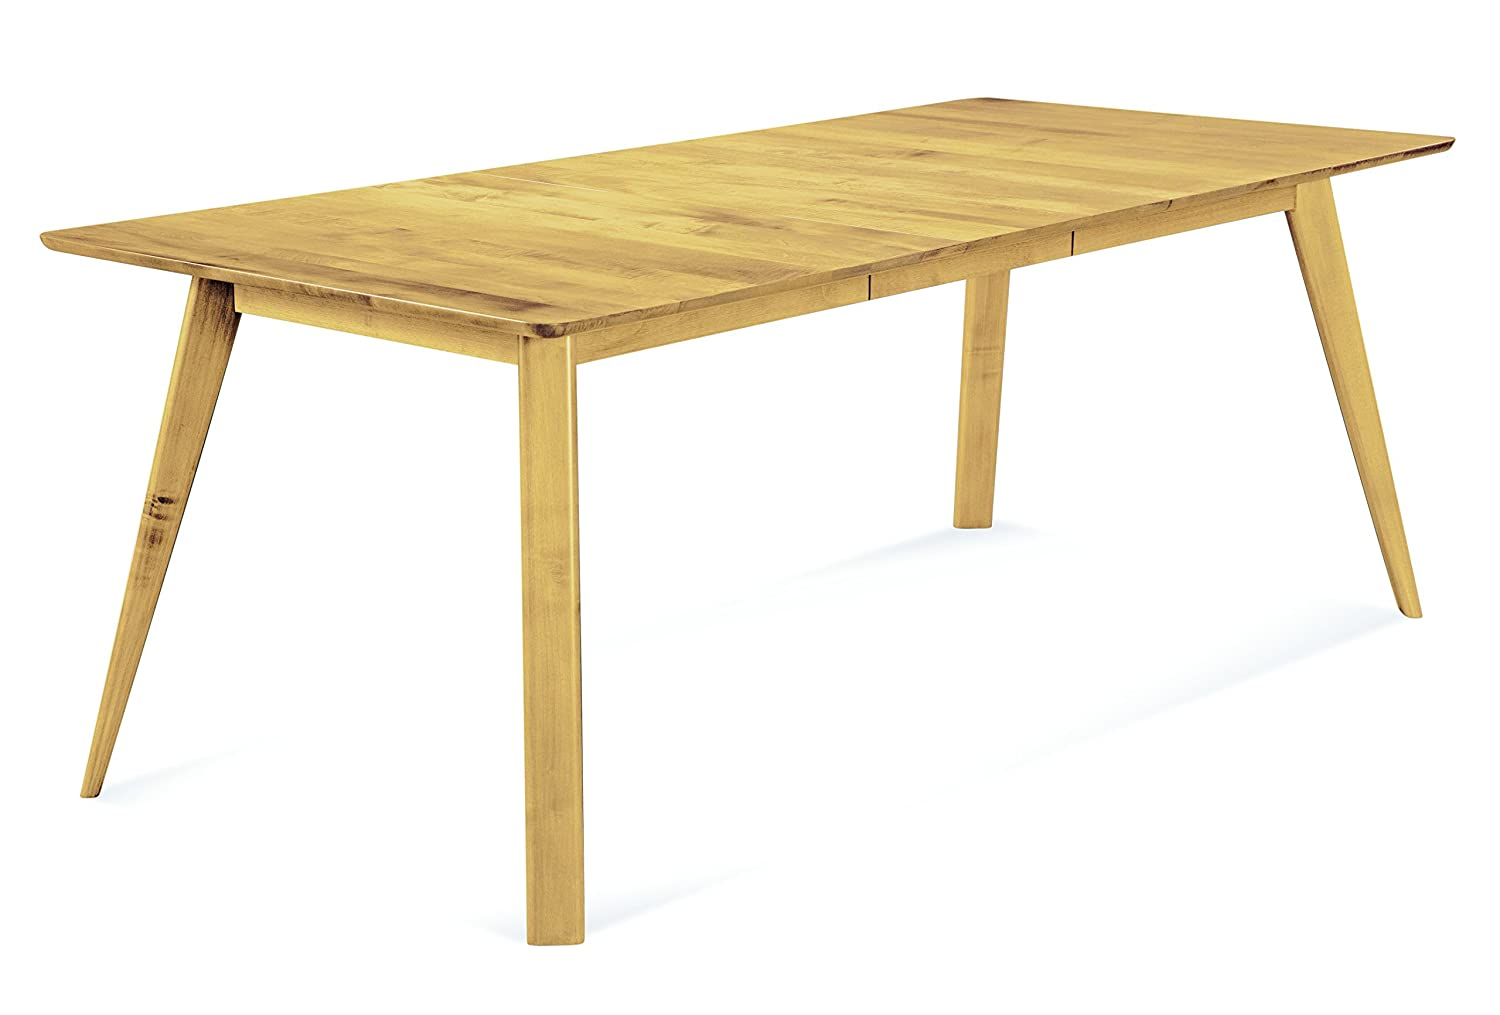 Saloom Furniture Alton Rectangular Maple Smooth Top Dining Table - 36 x 60 - Natural Finish